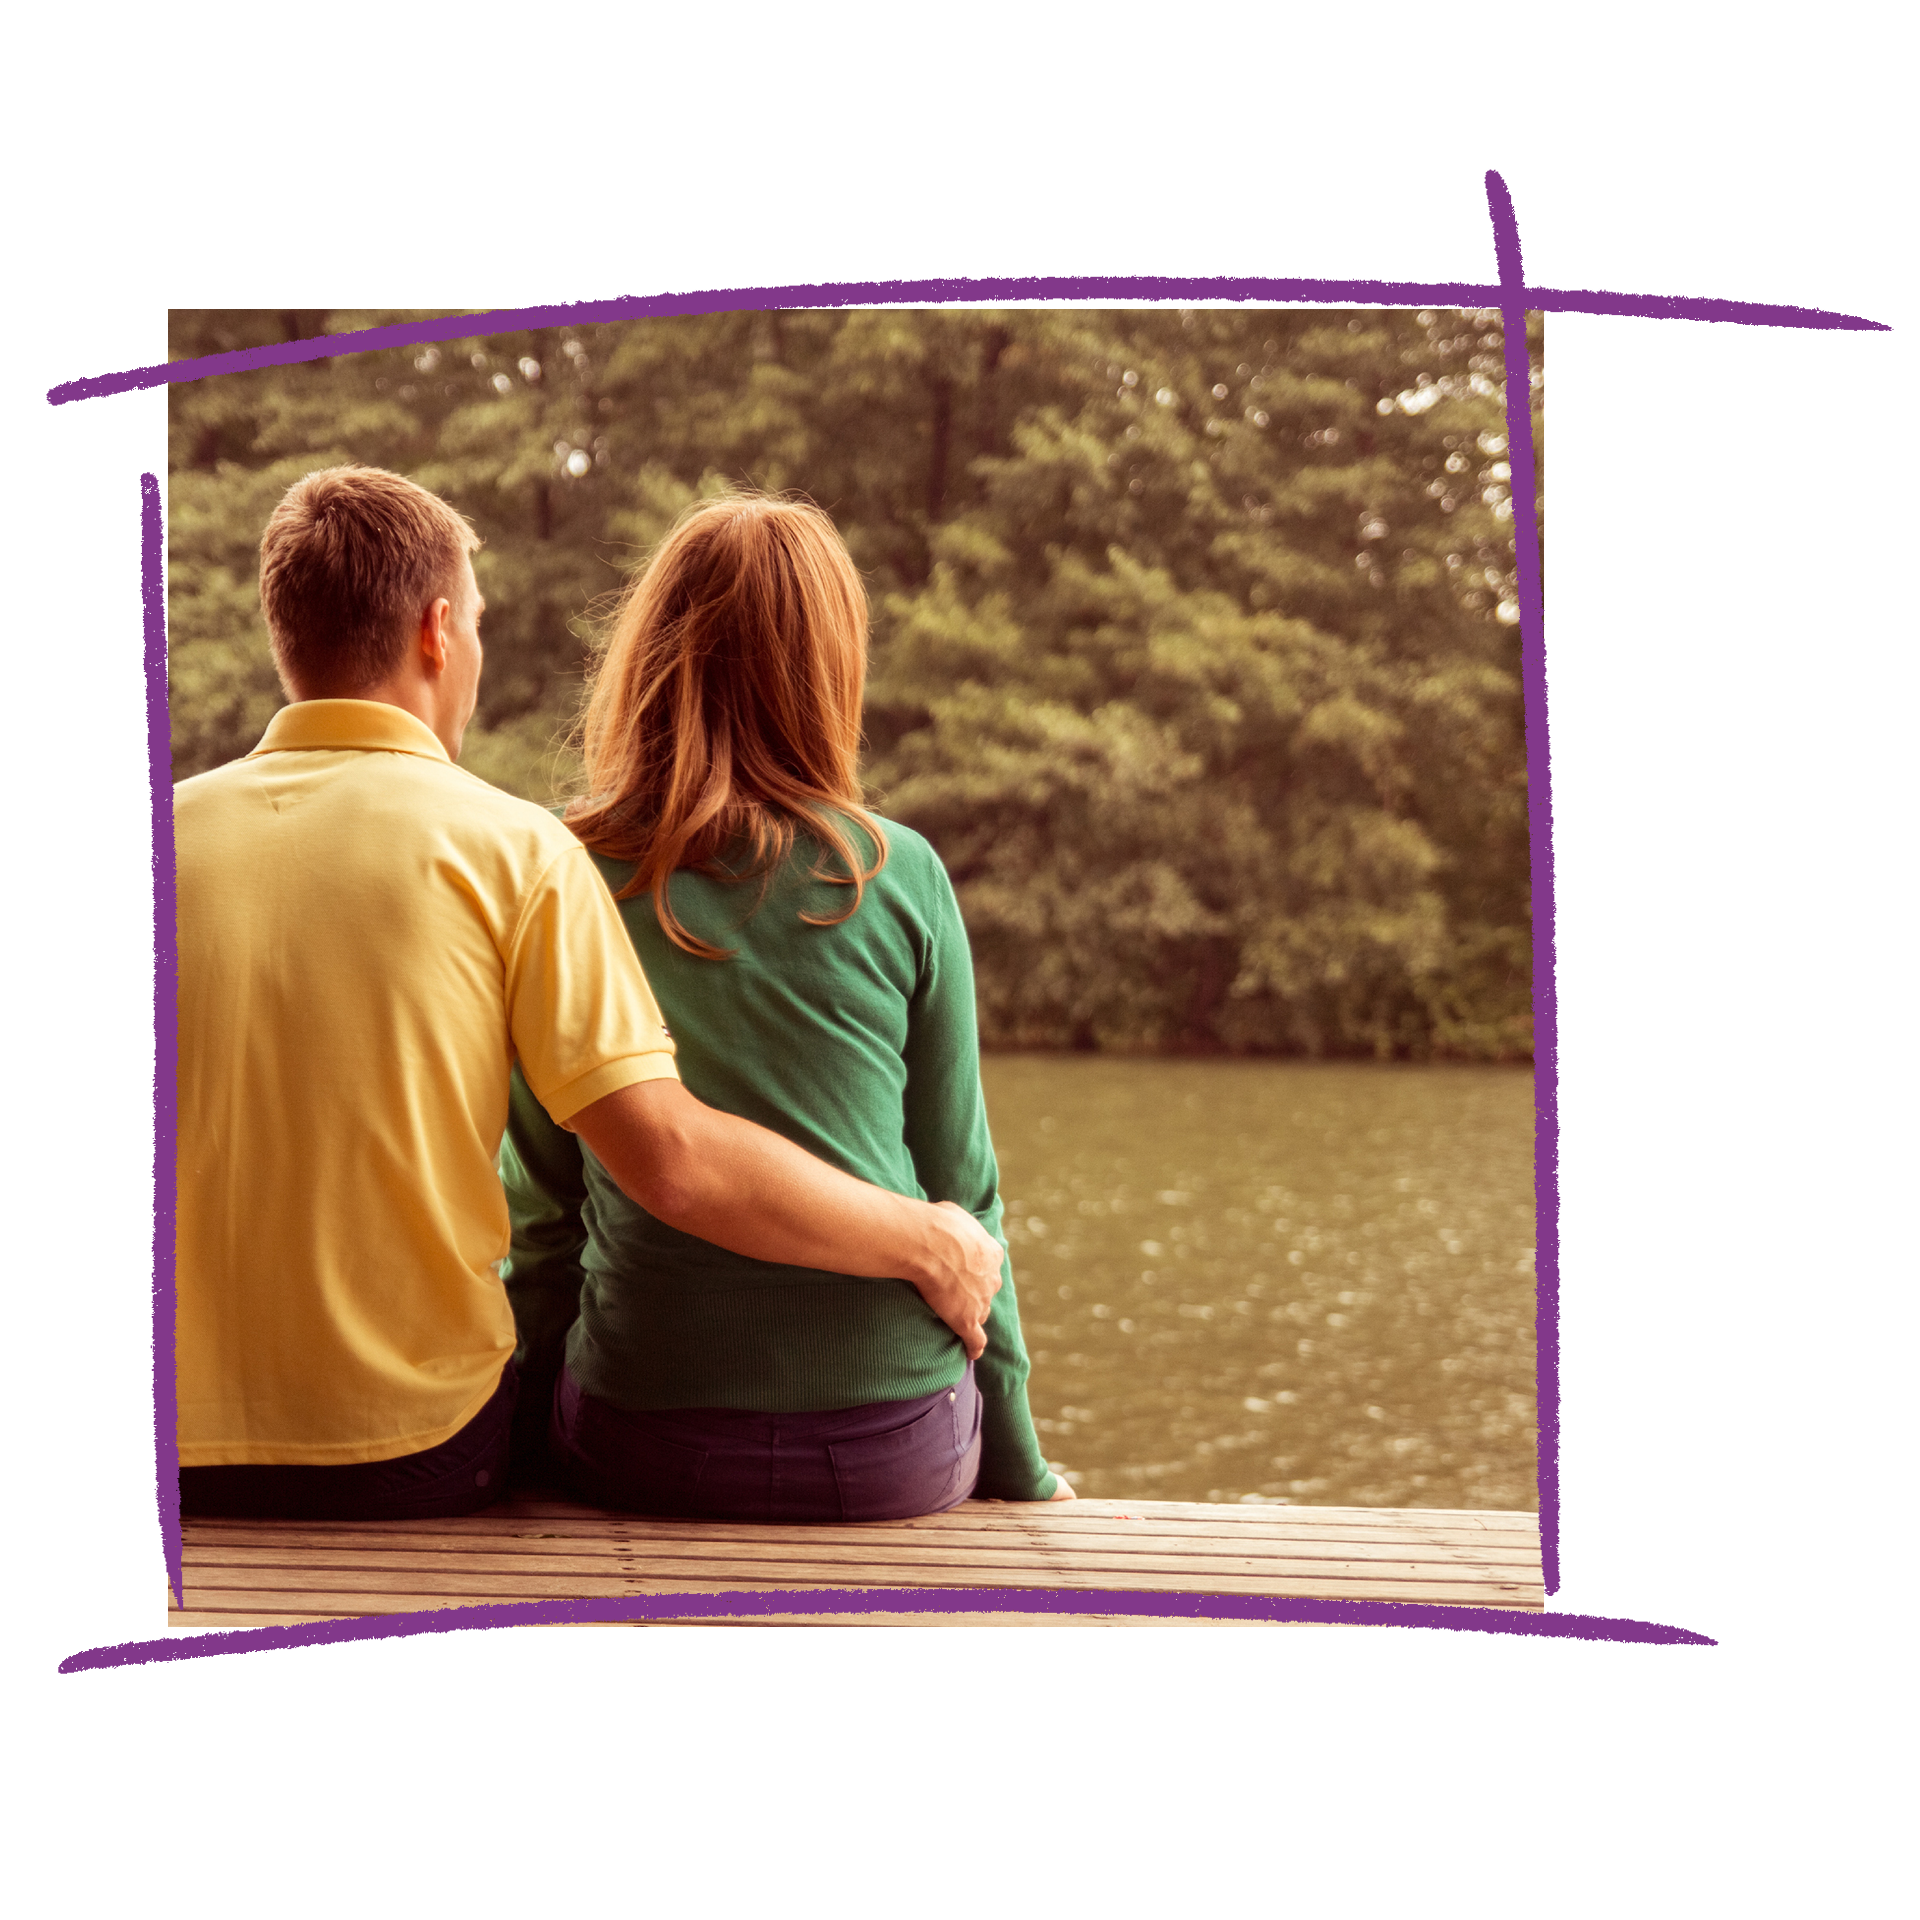 Photo of a man and a woman sitting on a wooden bench looking out at the water. The man has his arm around the woman.